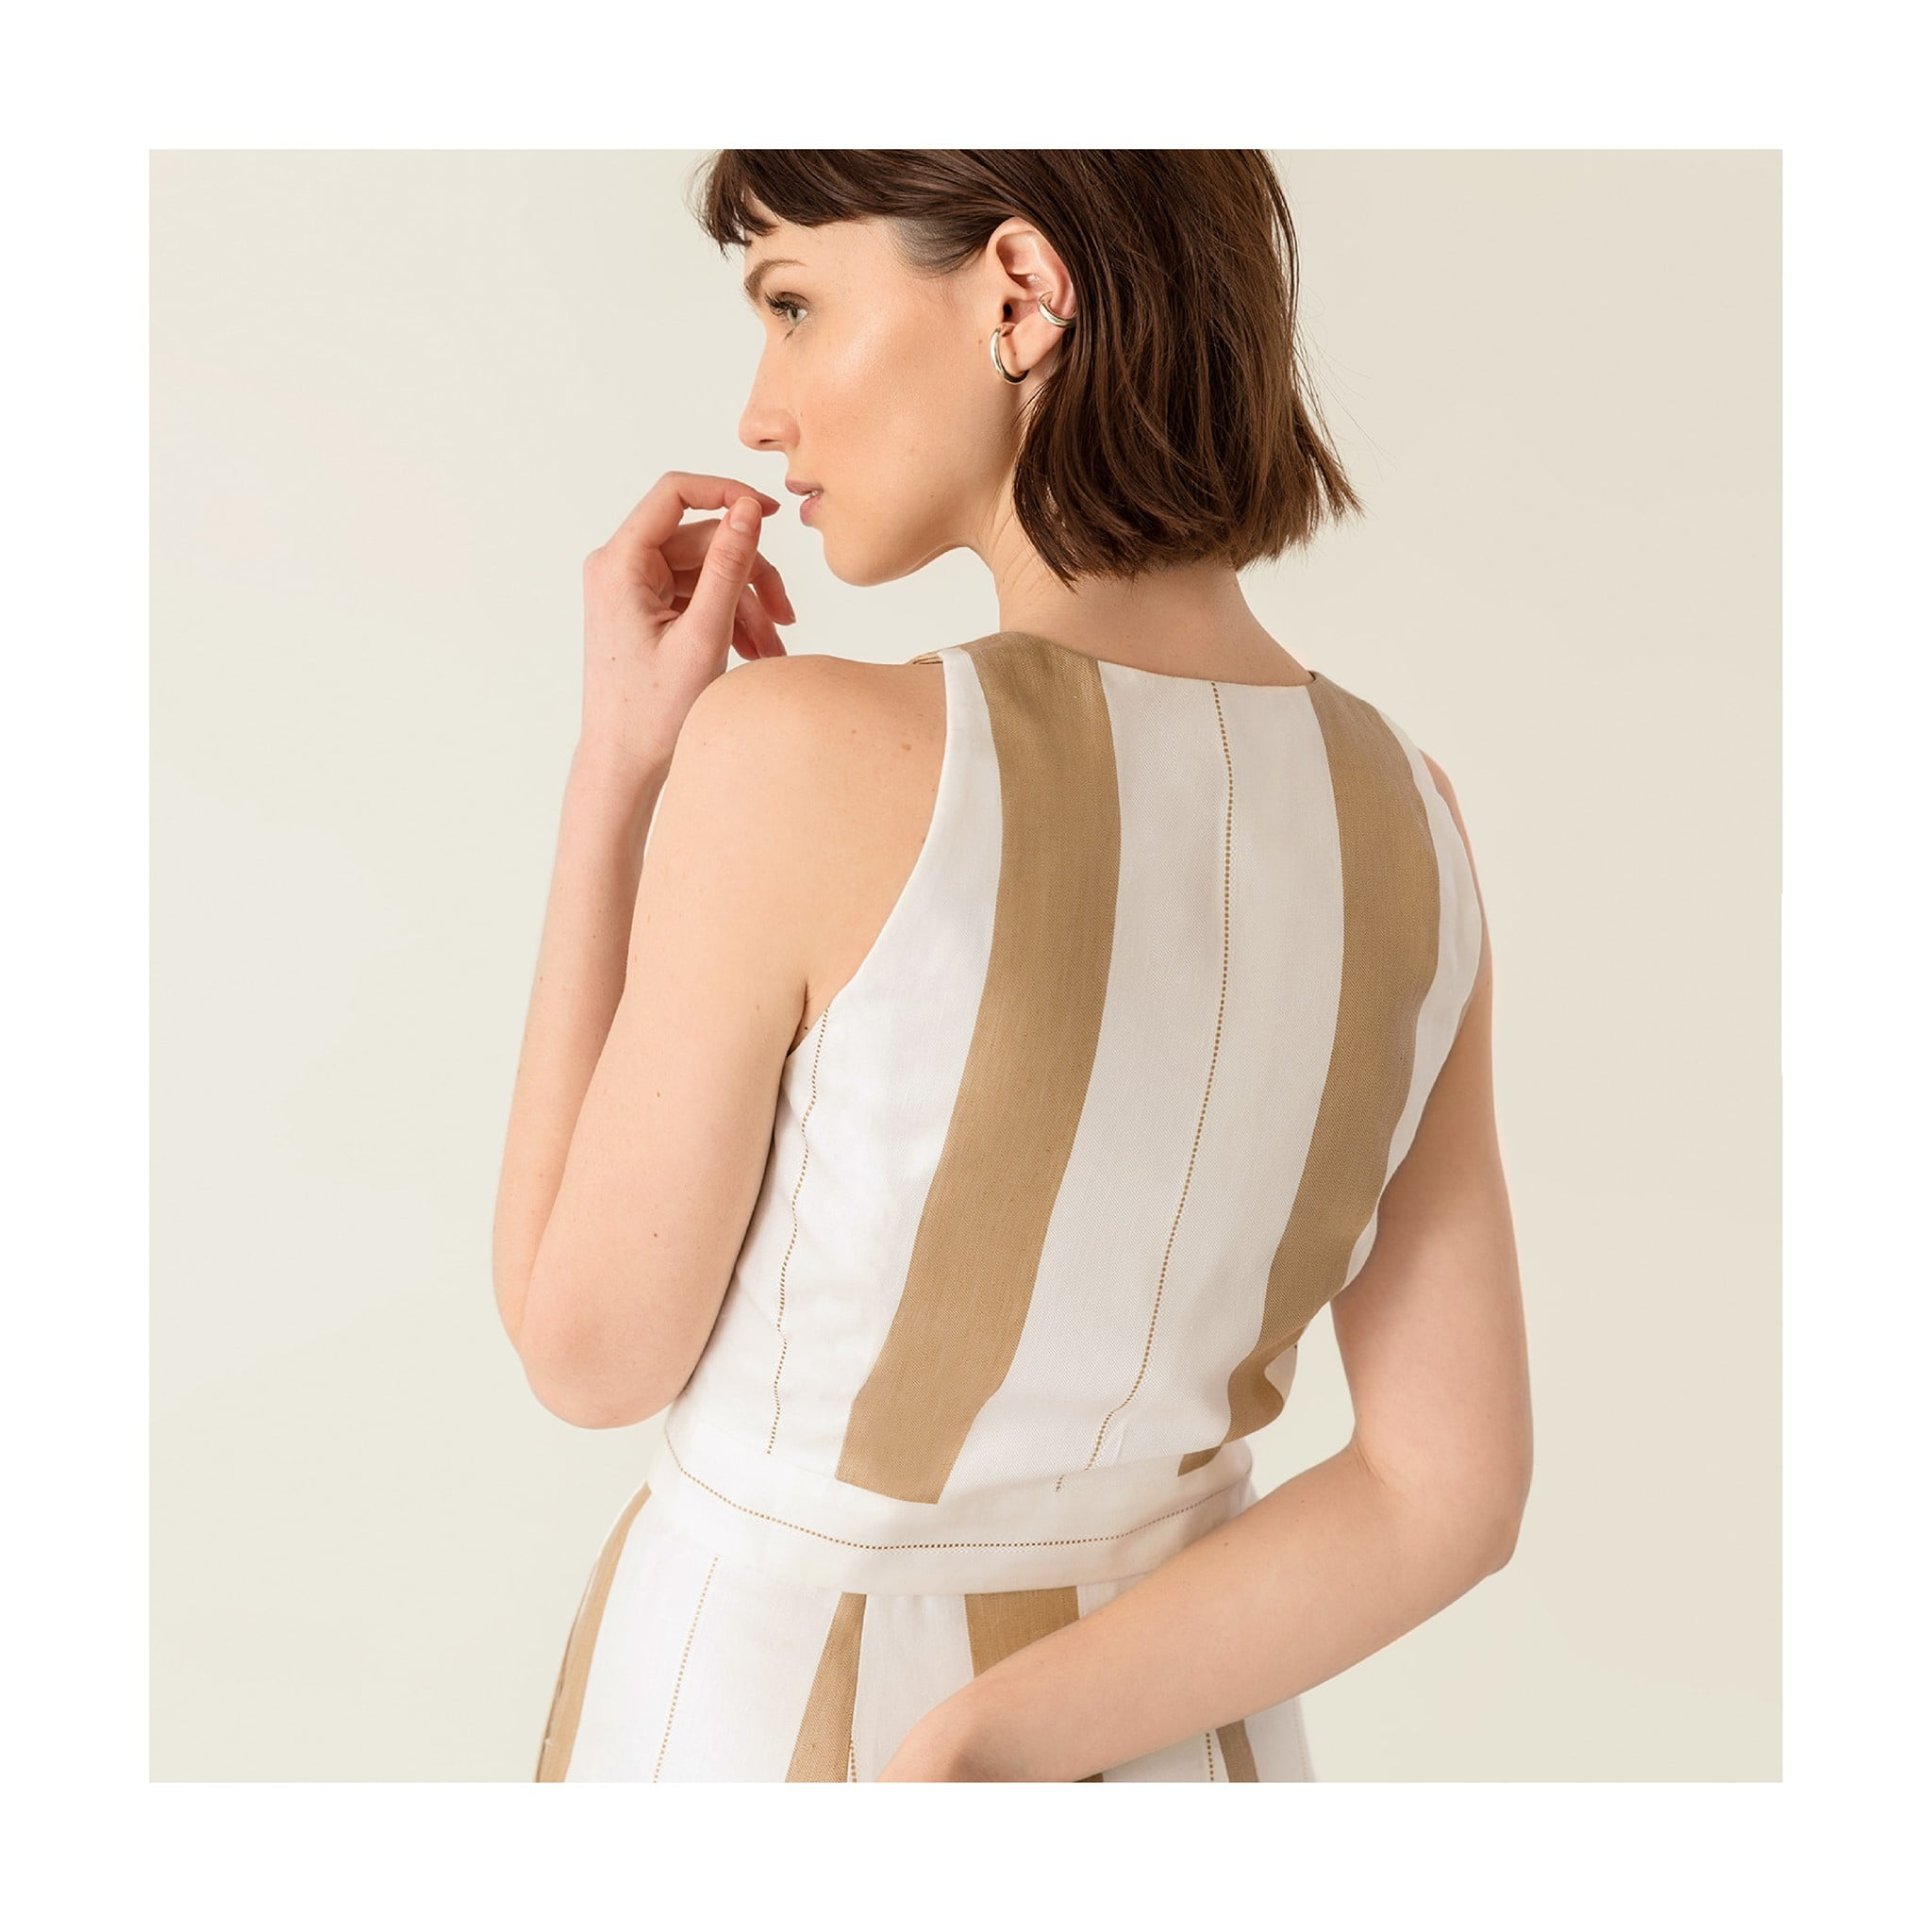 brown and white sleeveless dress by Ivy & Oak, a sustainable clothing brand